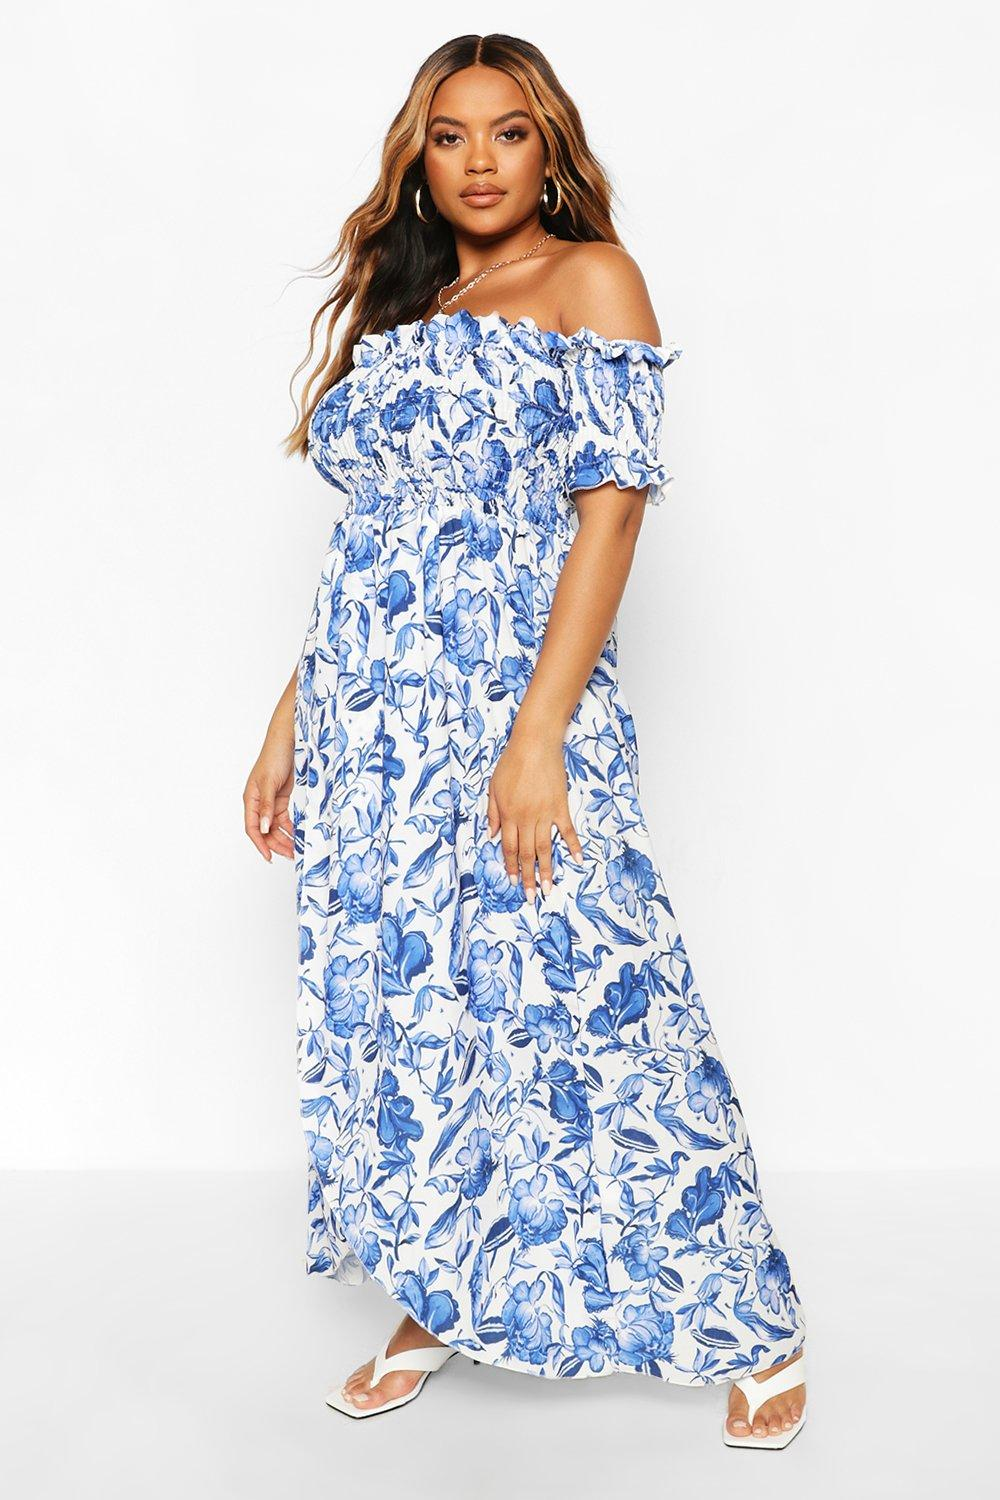 Victorious Puffed Floral Top - Royal 3